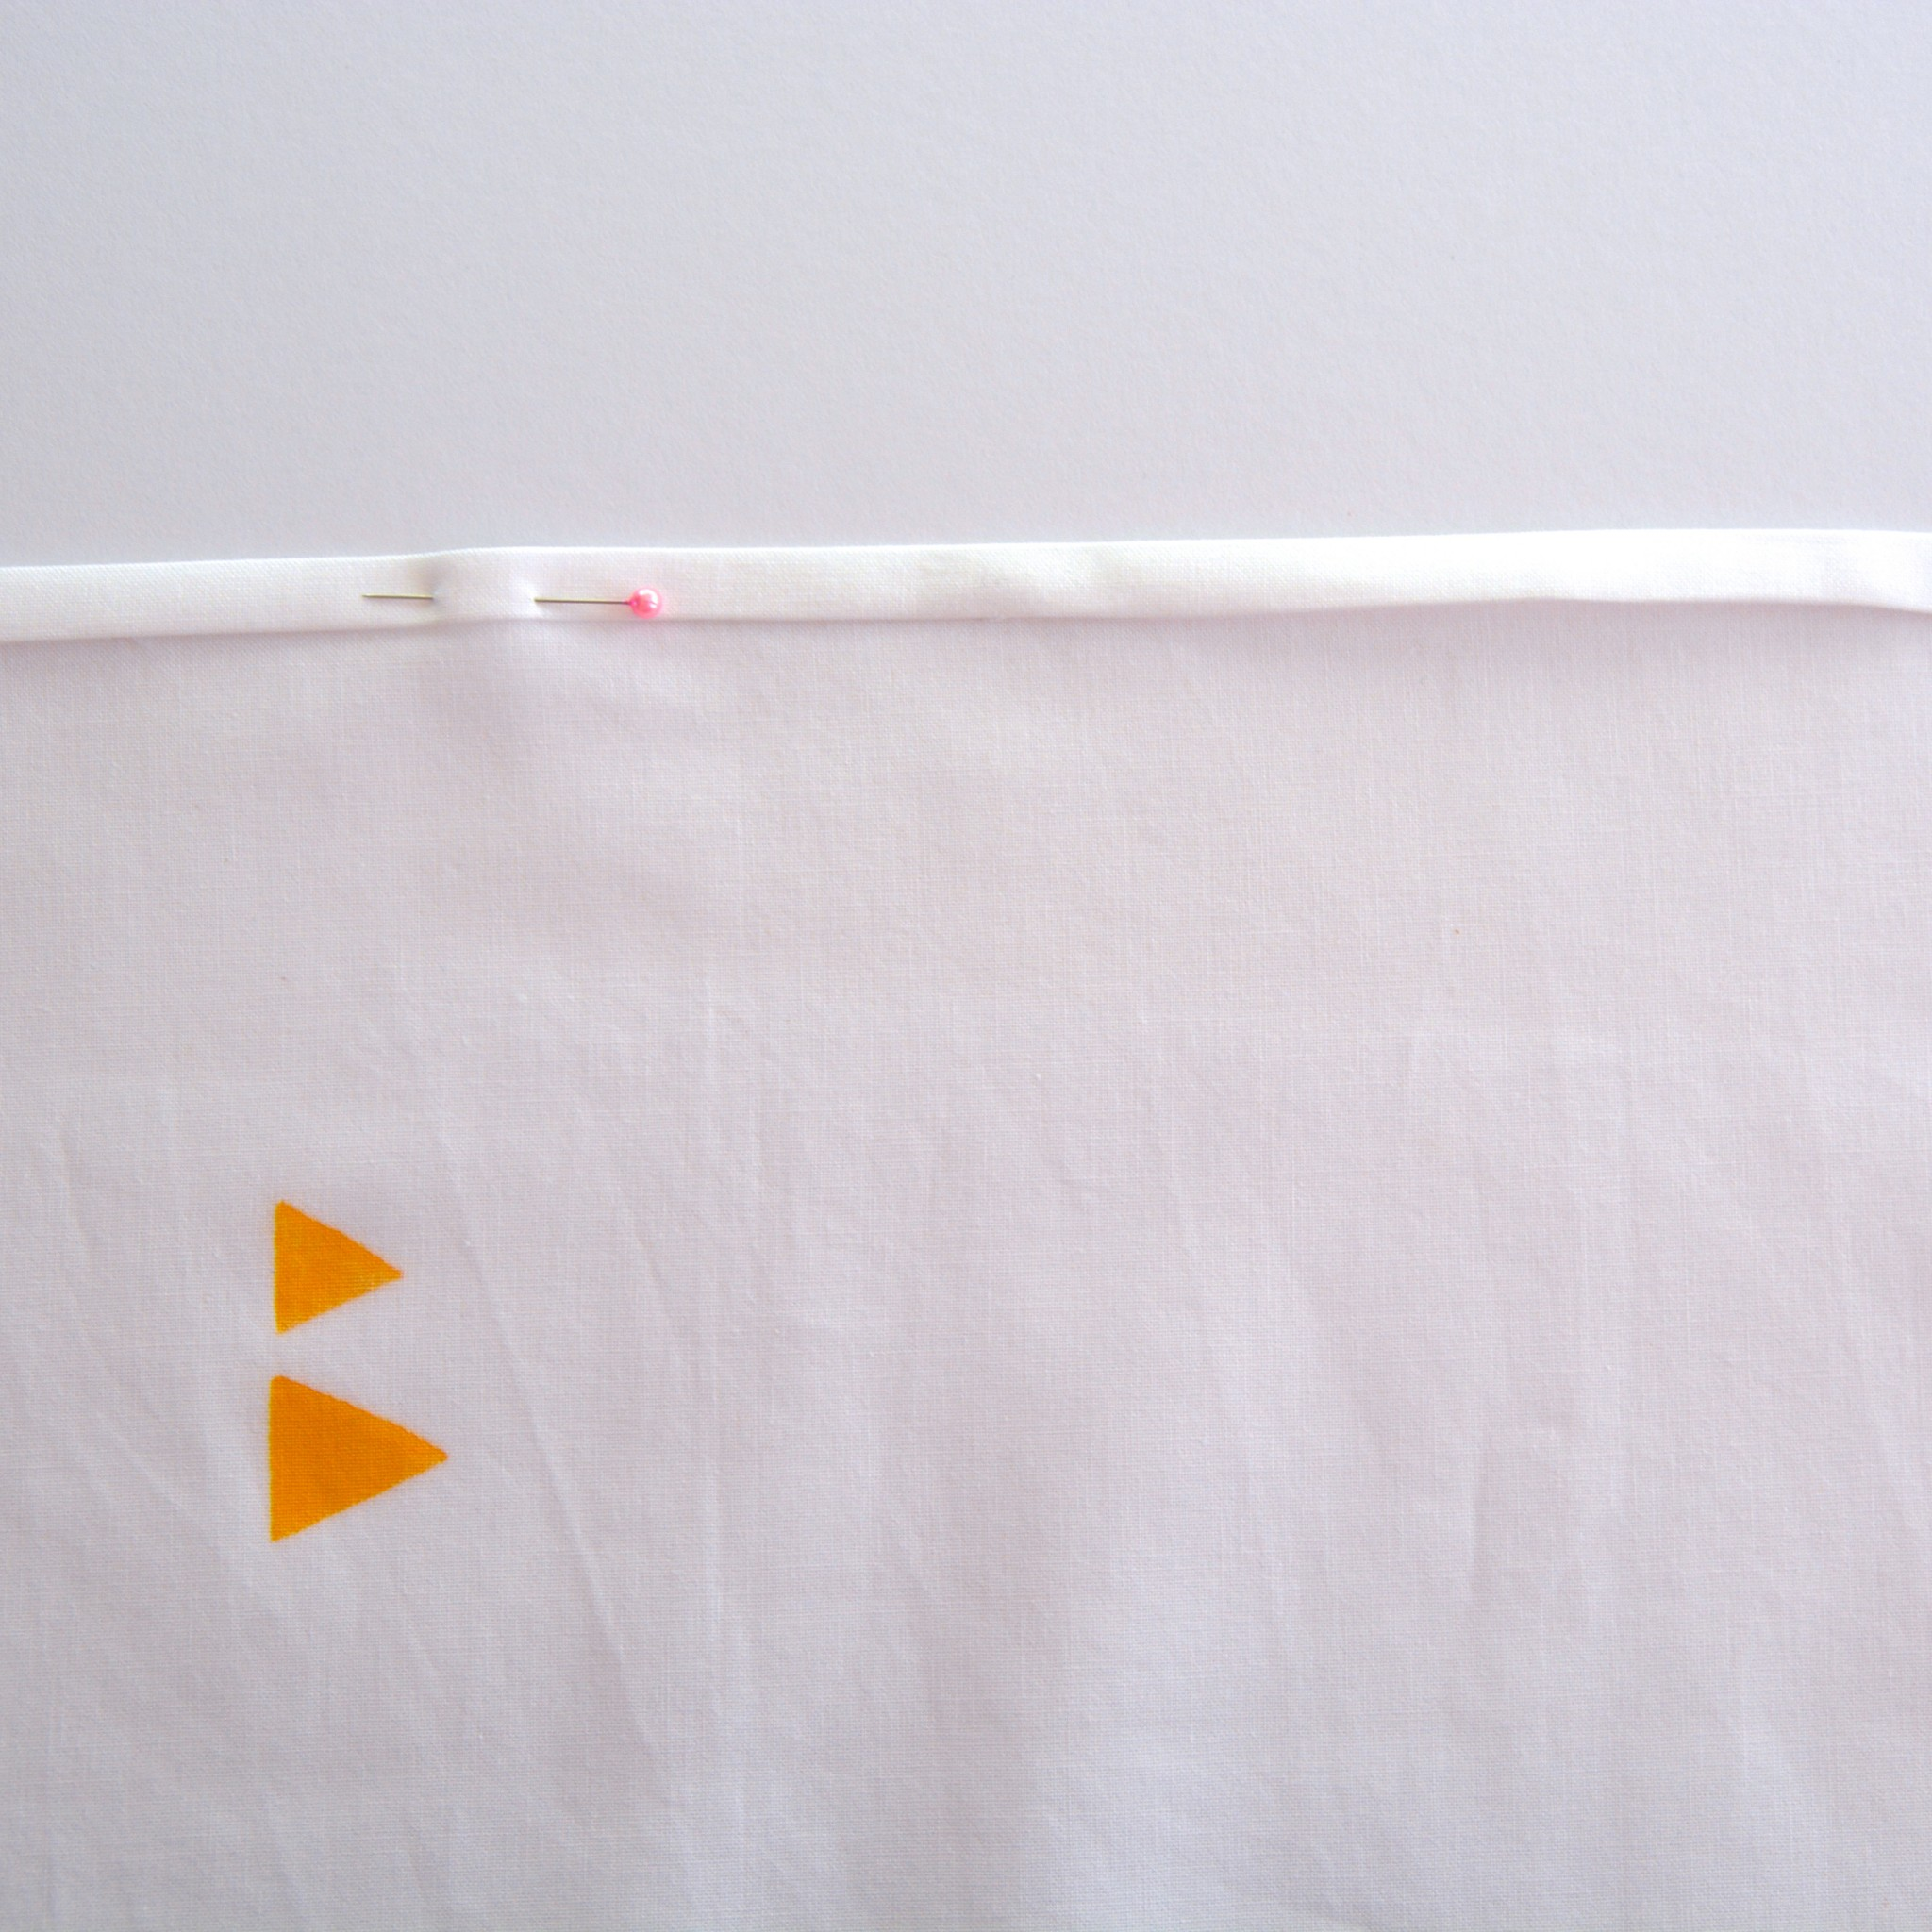 Stitch the side seams | Hello! Hooray!